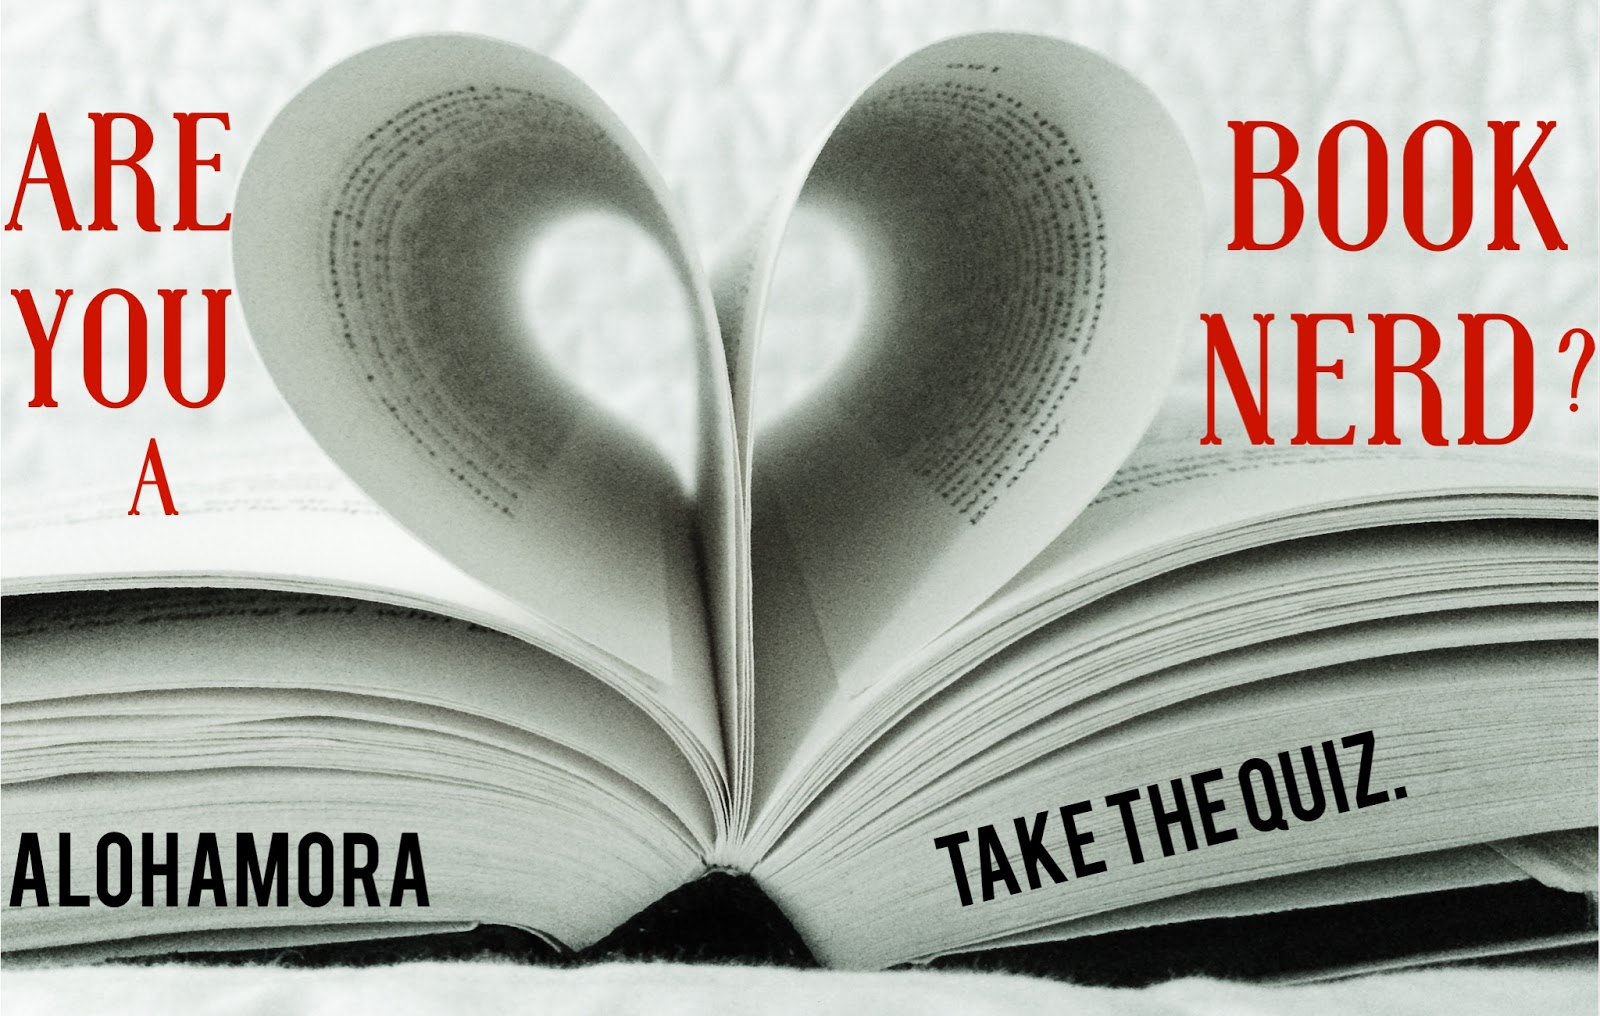 Take a quiz to determine how much of a book/literary nerd you are. Aloharmora Open a Book http://alohamoraopenabook.blogspot.com/